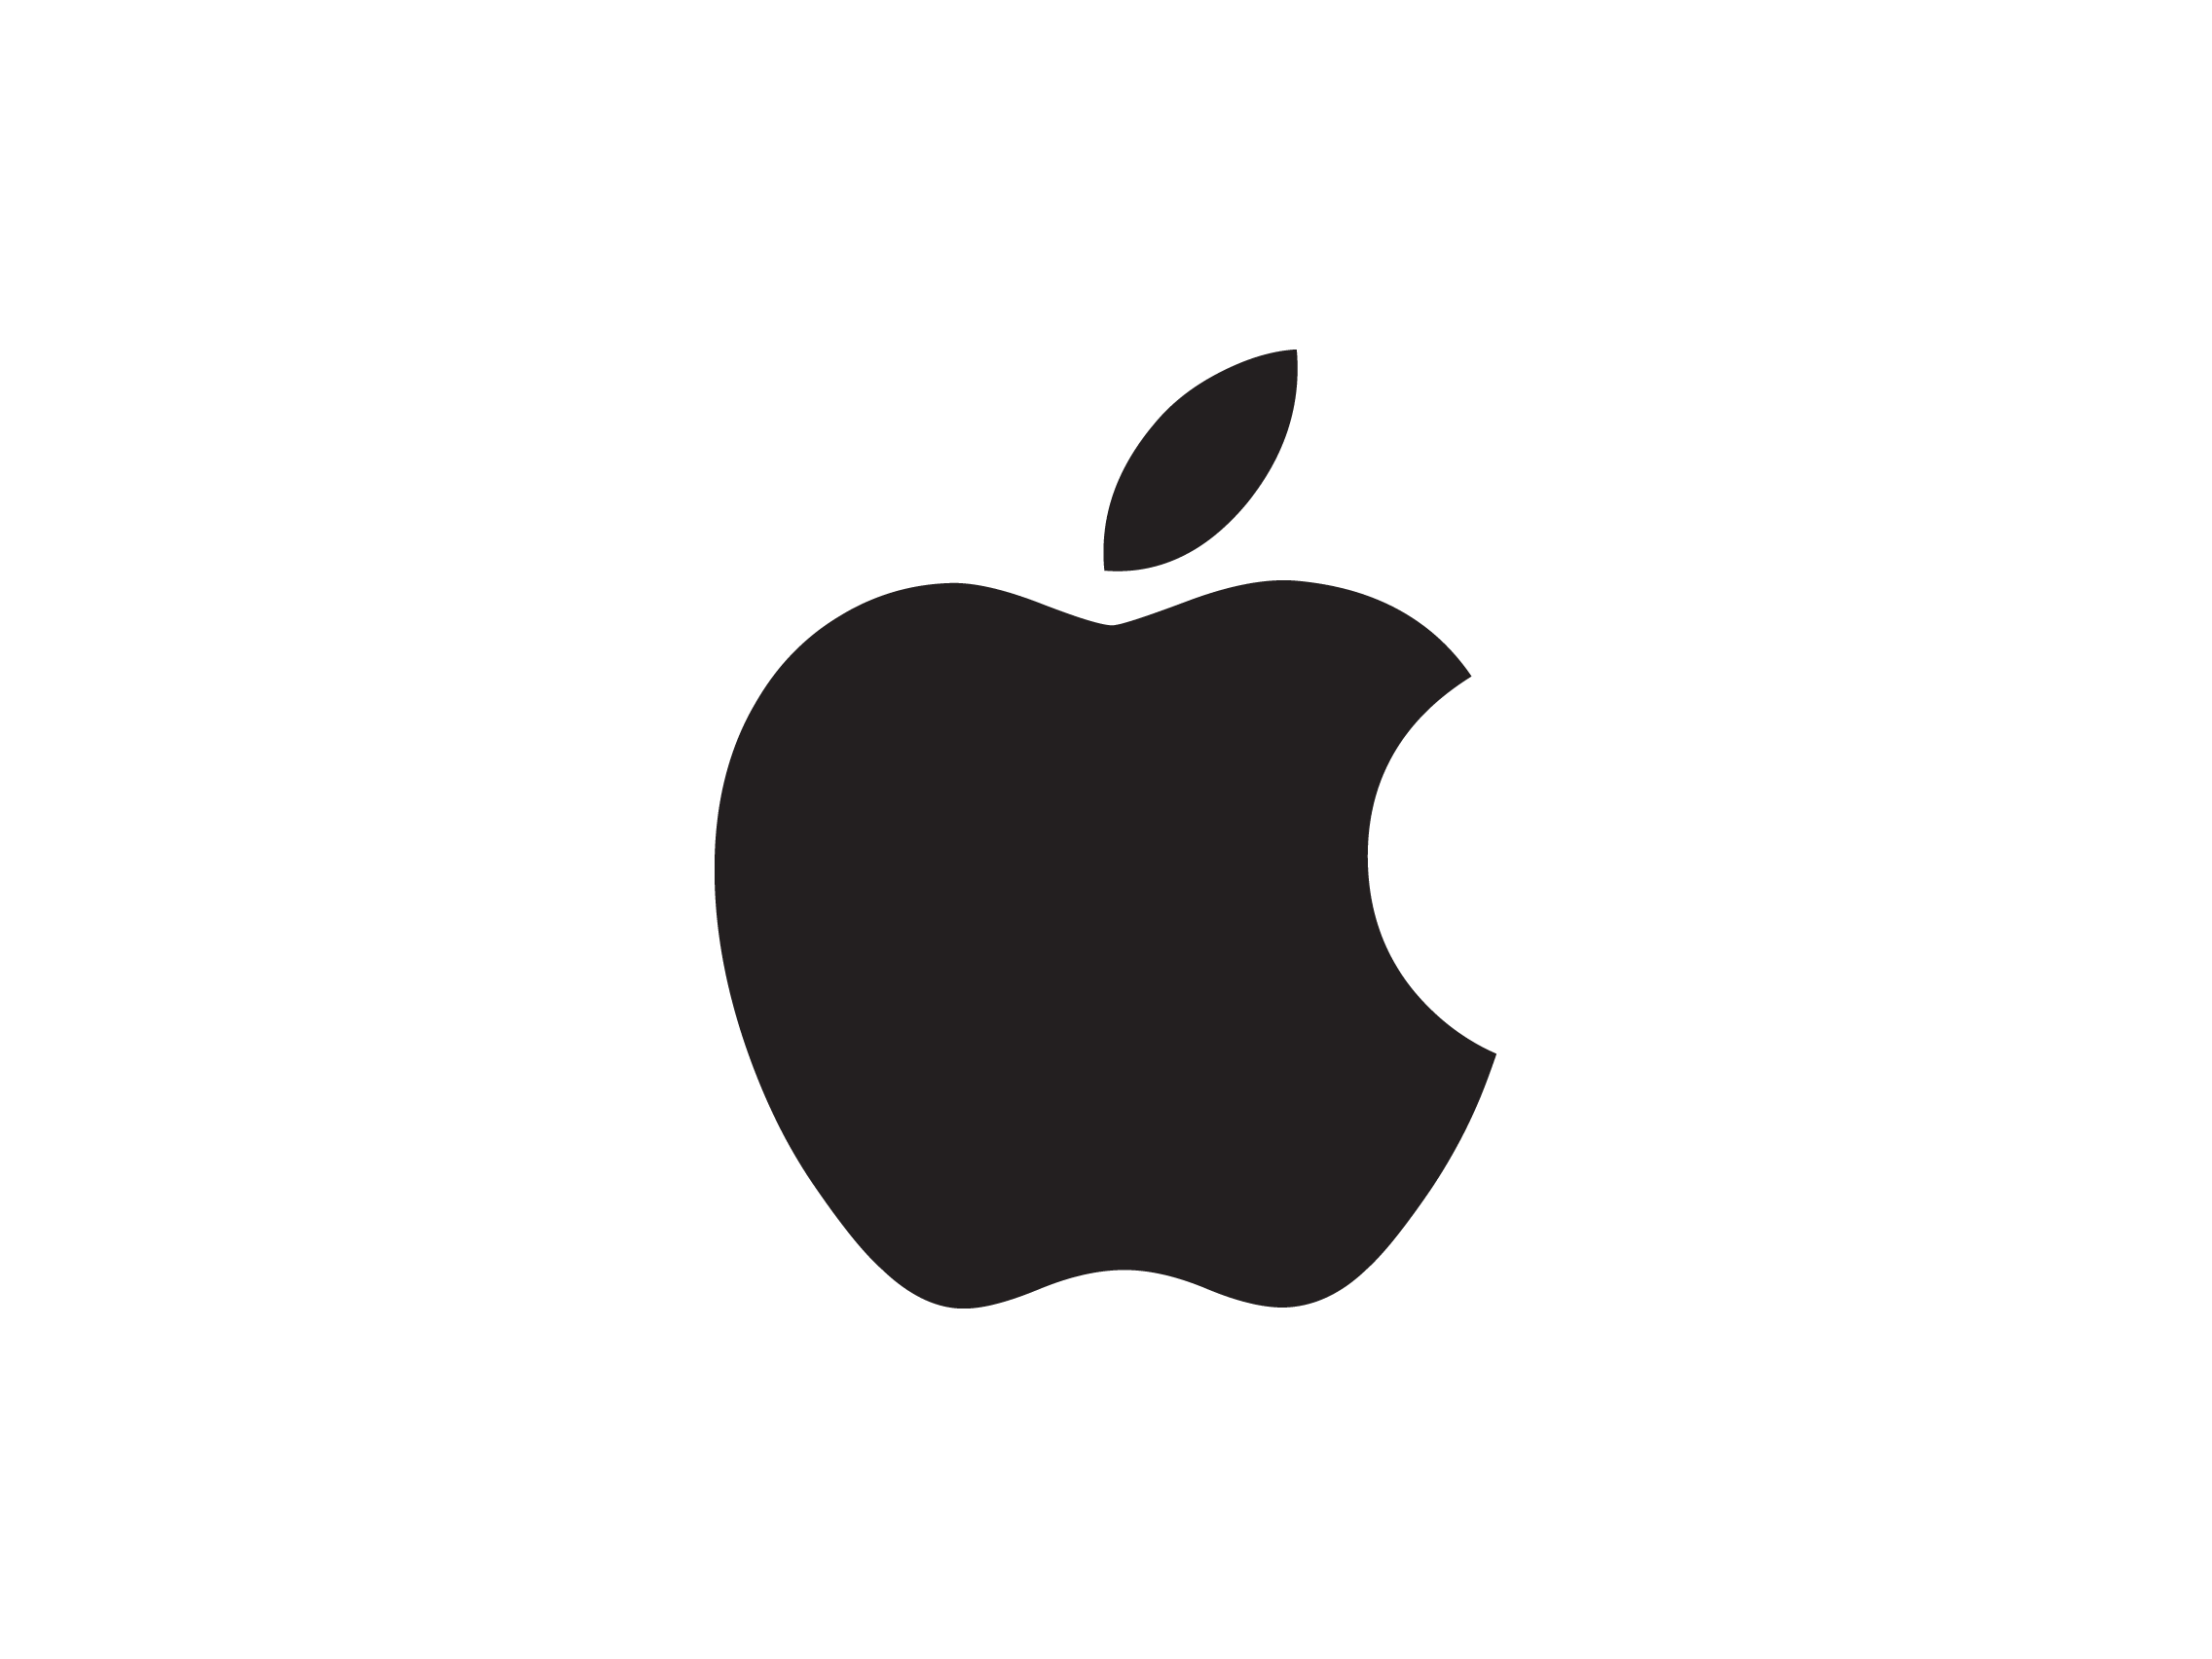 Scale clipart apple. Now hiring full time